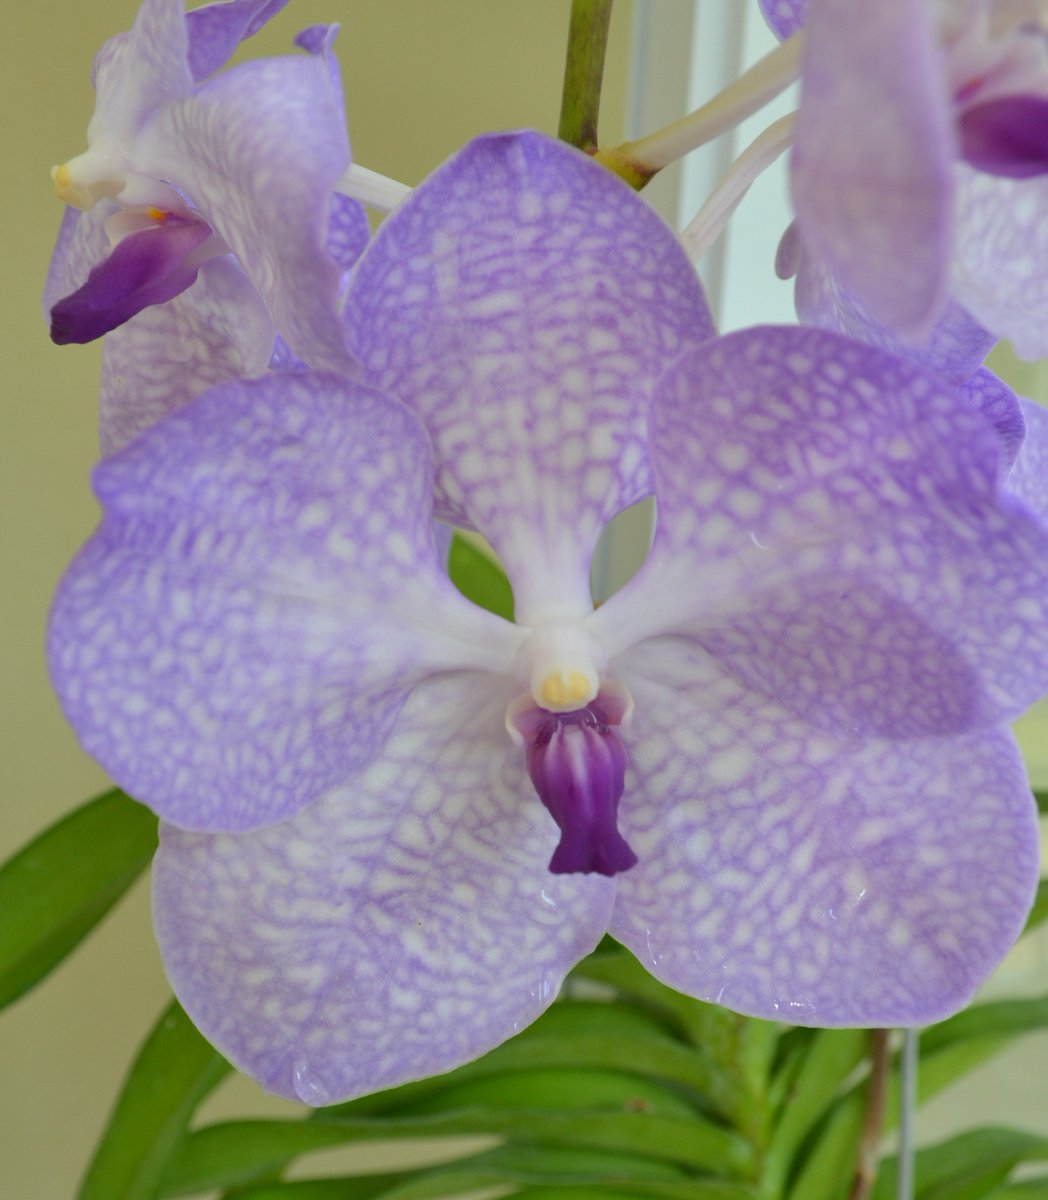 The lilac petals and deep purple lip made the lack of tag a non issue. #orchids, #vanda, #flowers<br>http://pic.twitter.com/IffvYmc0Jh